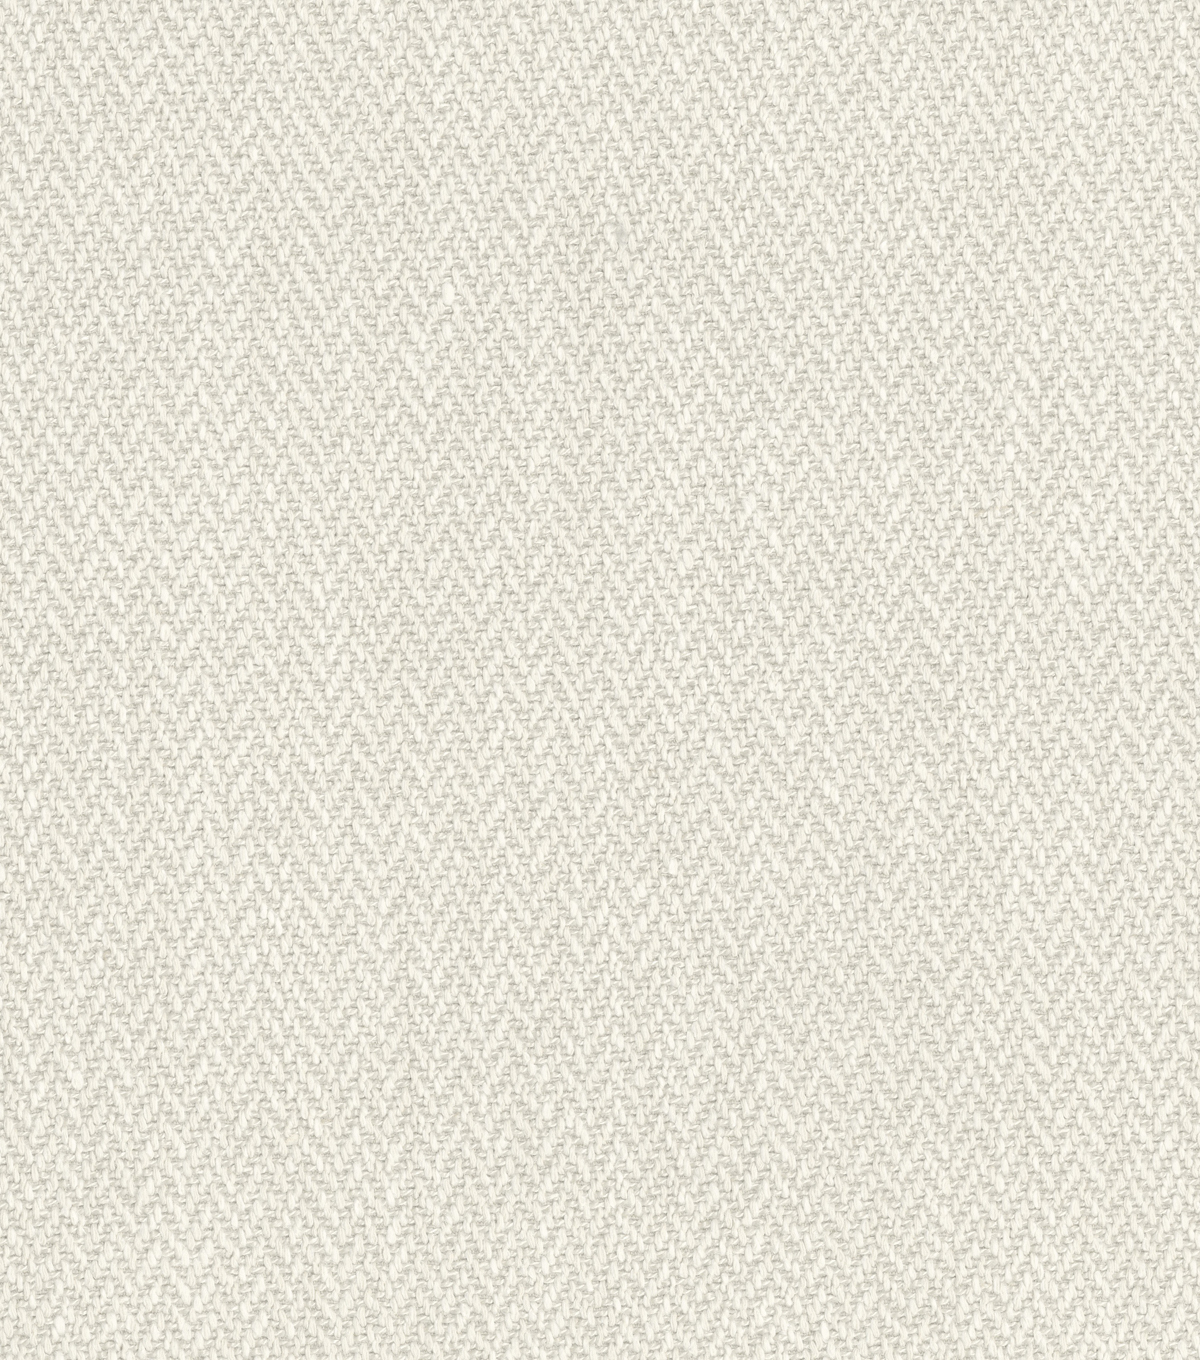 Home Decor 8\u0022x8\u0022 Fabric Swatch-Waverly Sublime Cream